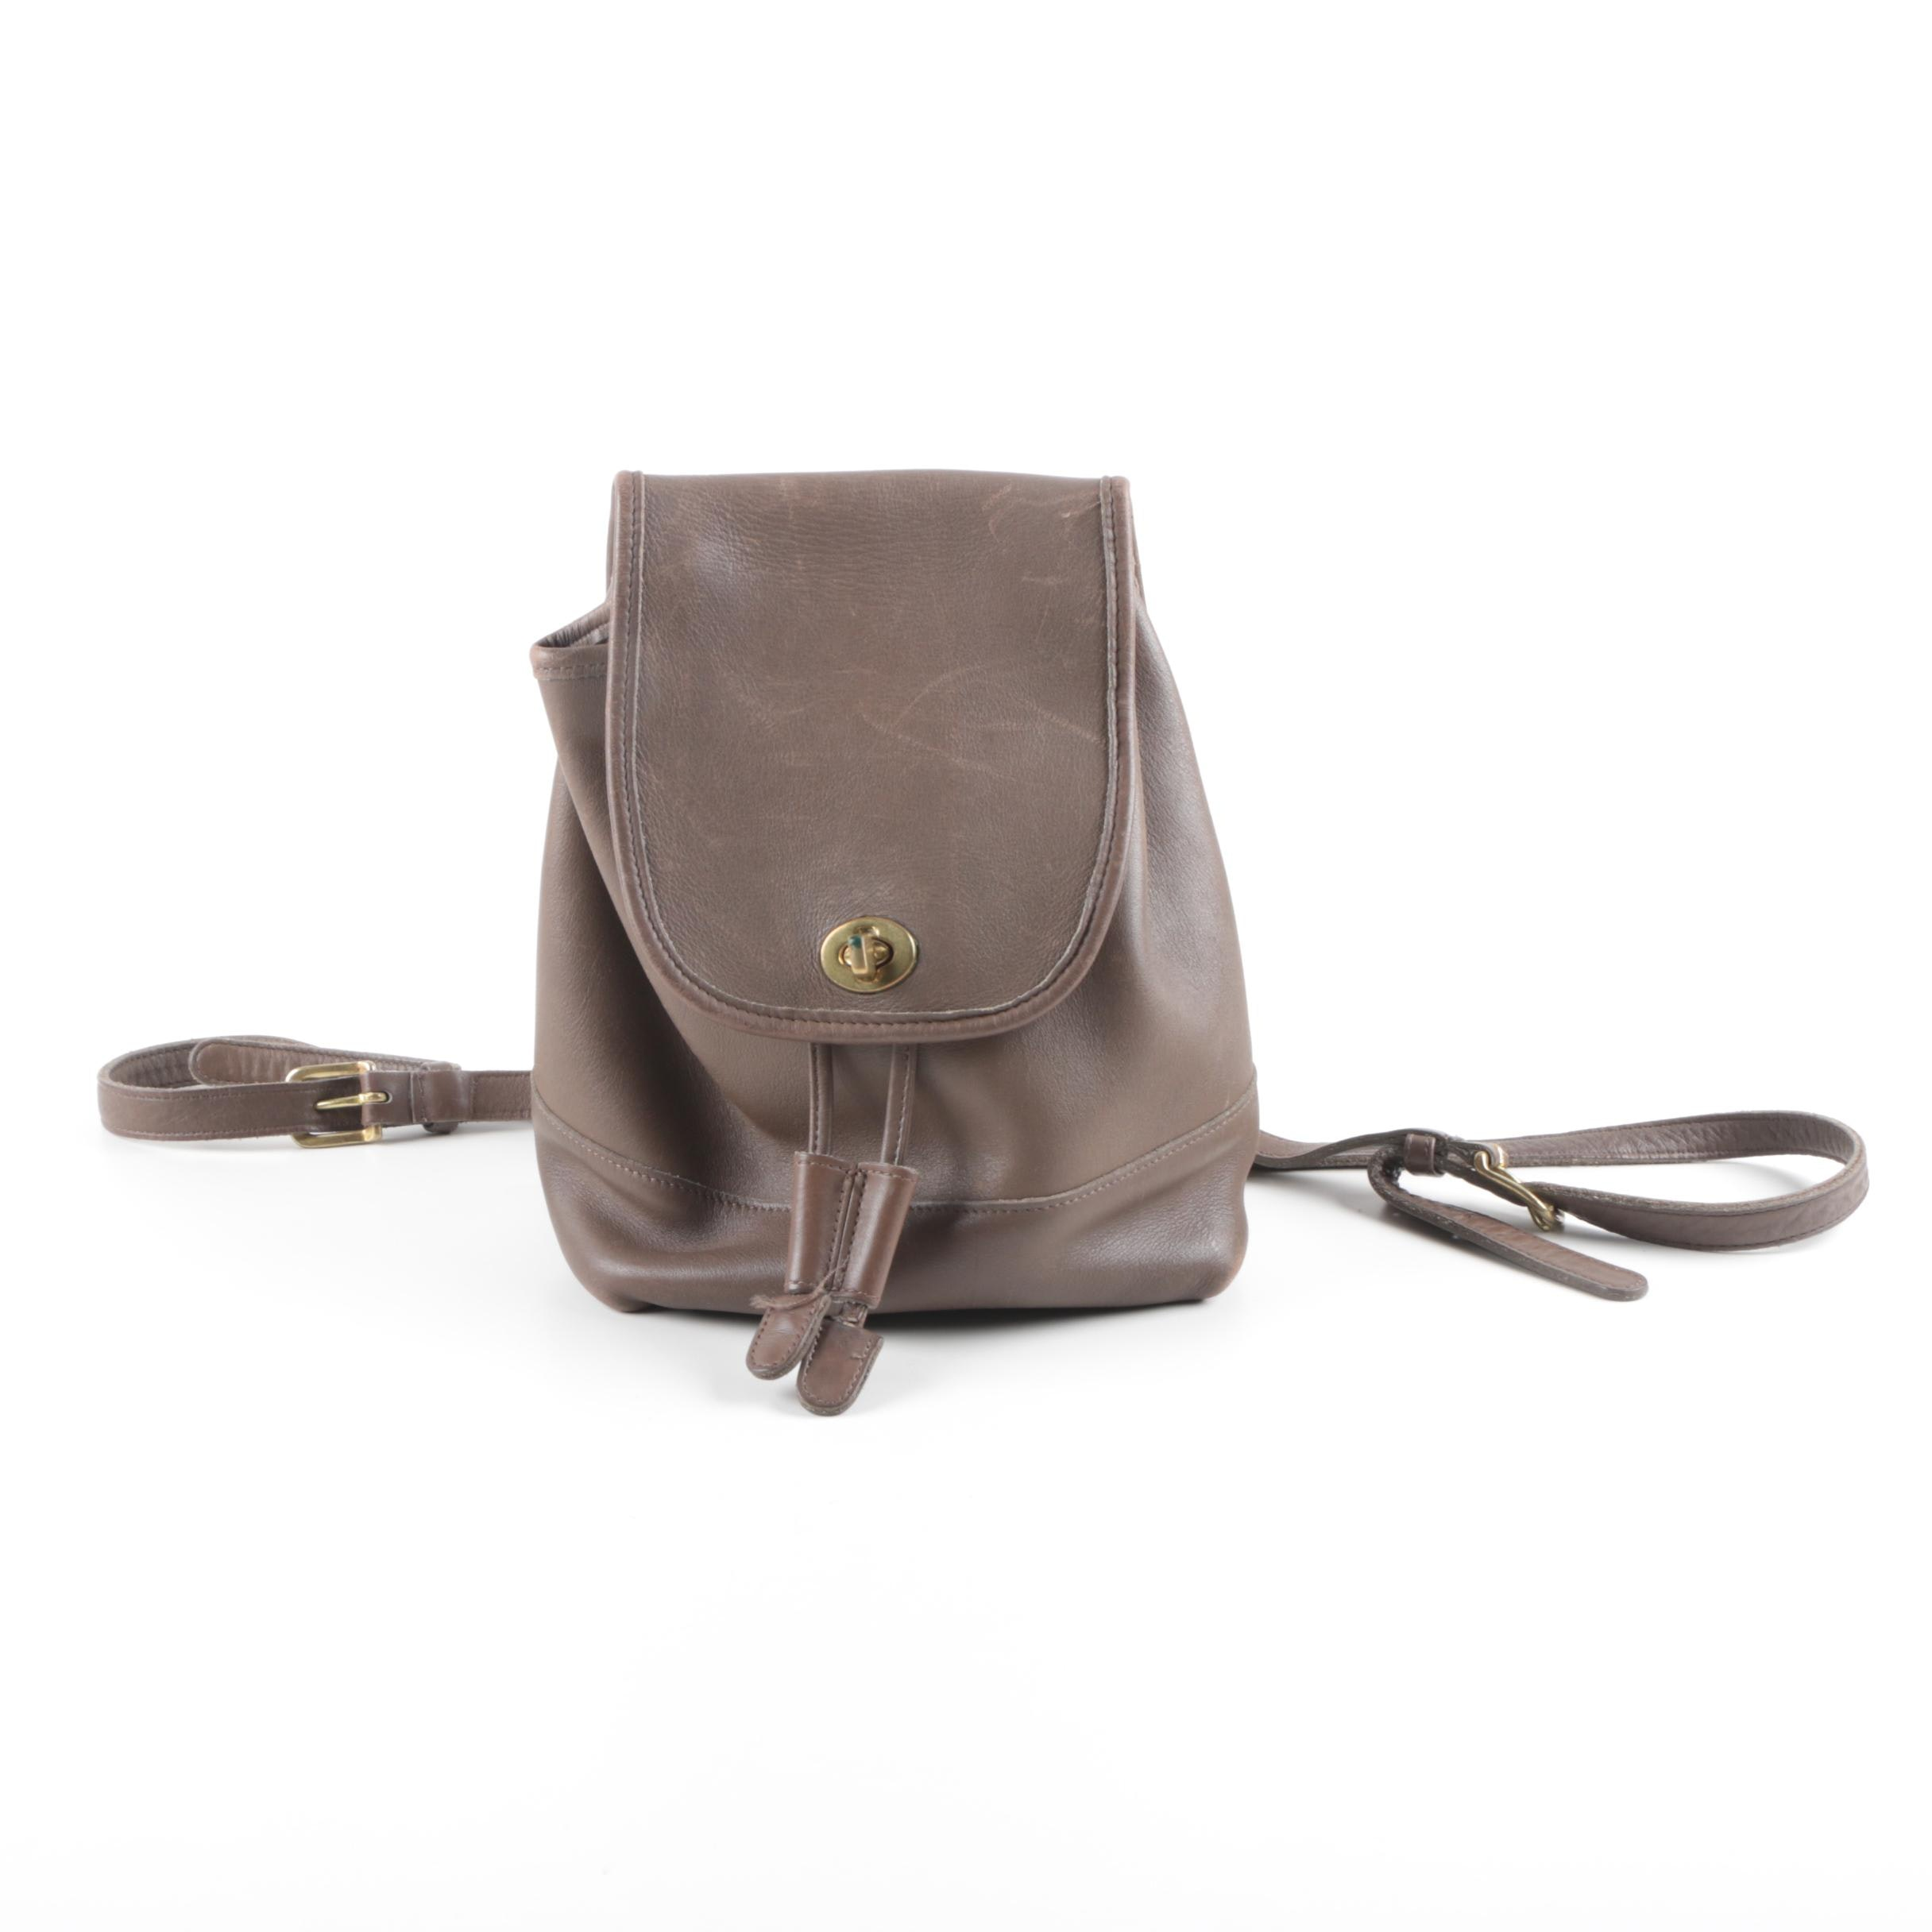 Coach Brown Leather Drawstring Backpack Purse